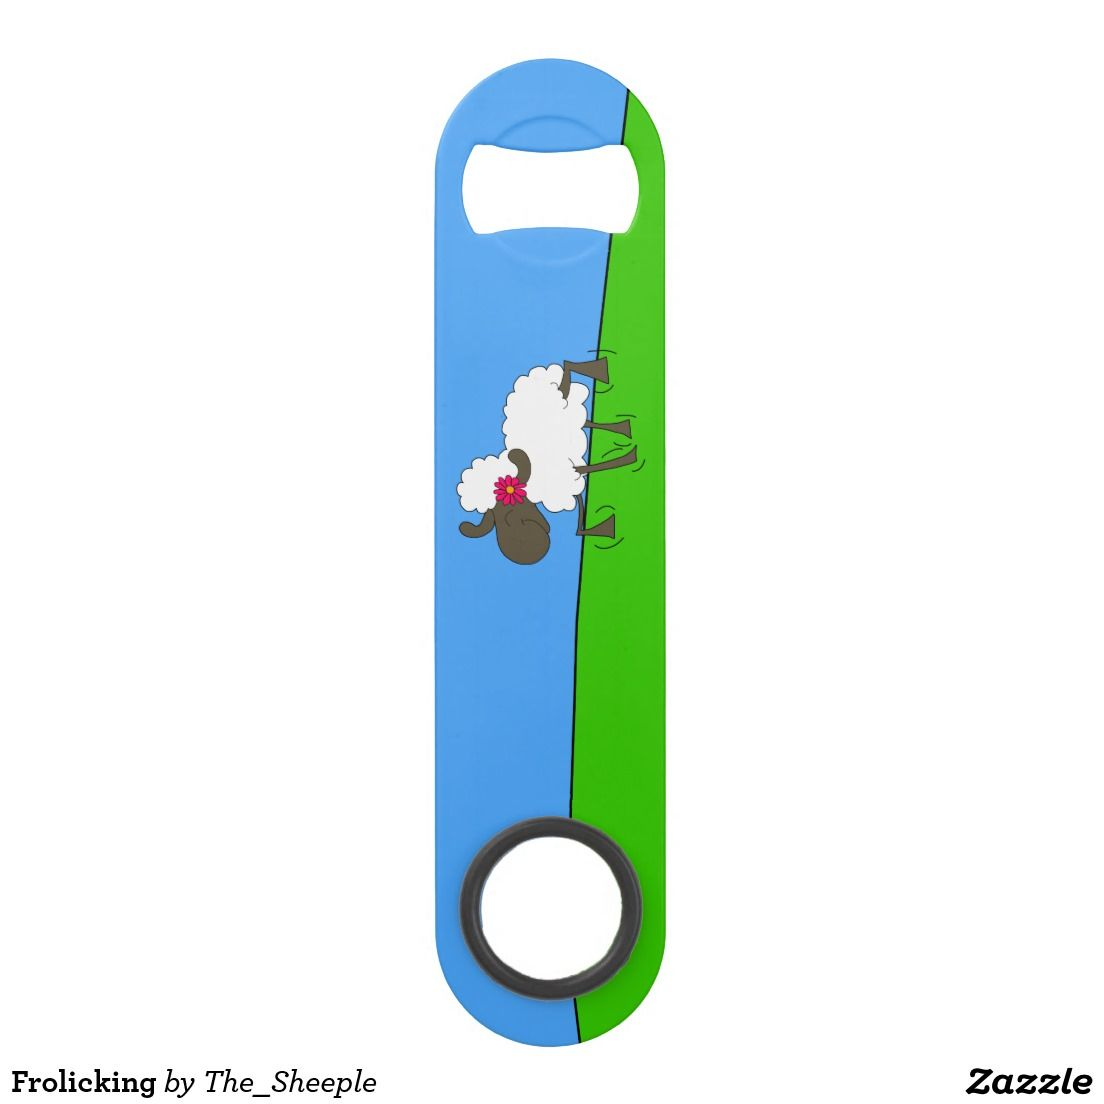 Frolicking Bar Key #sheeple